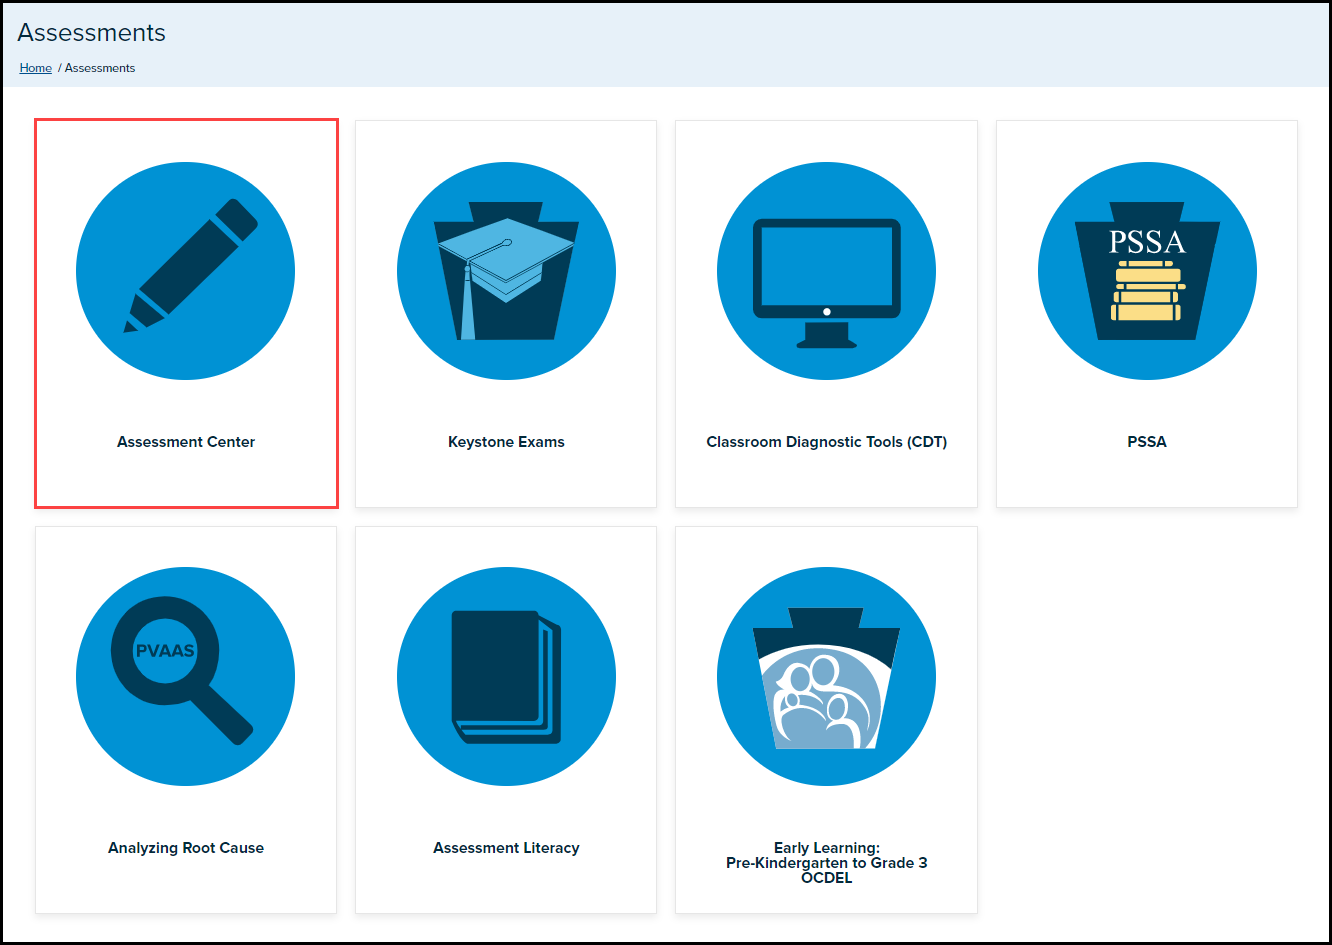 assessments page with assessment center button highlighted